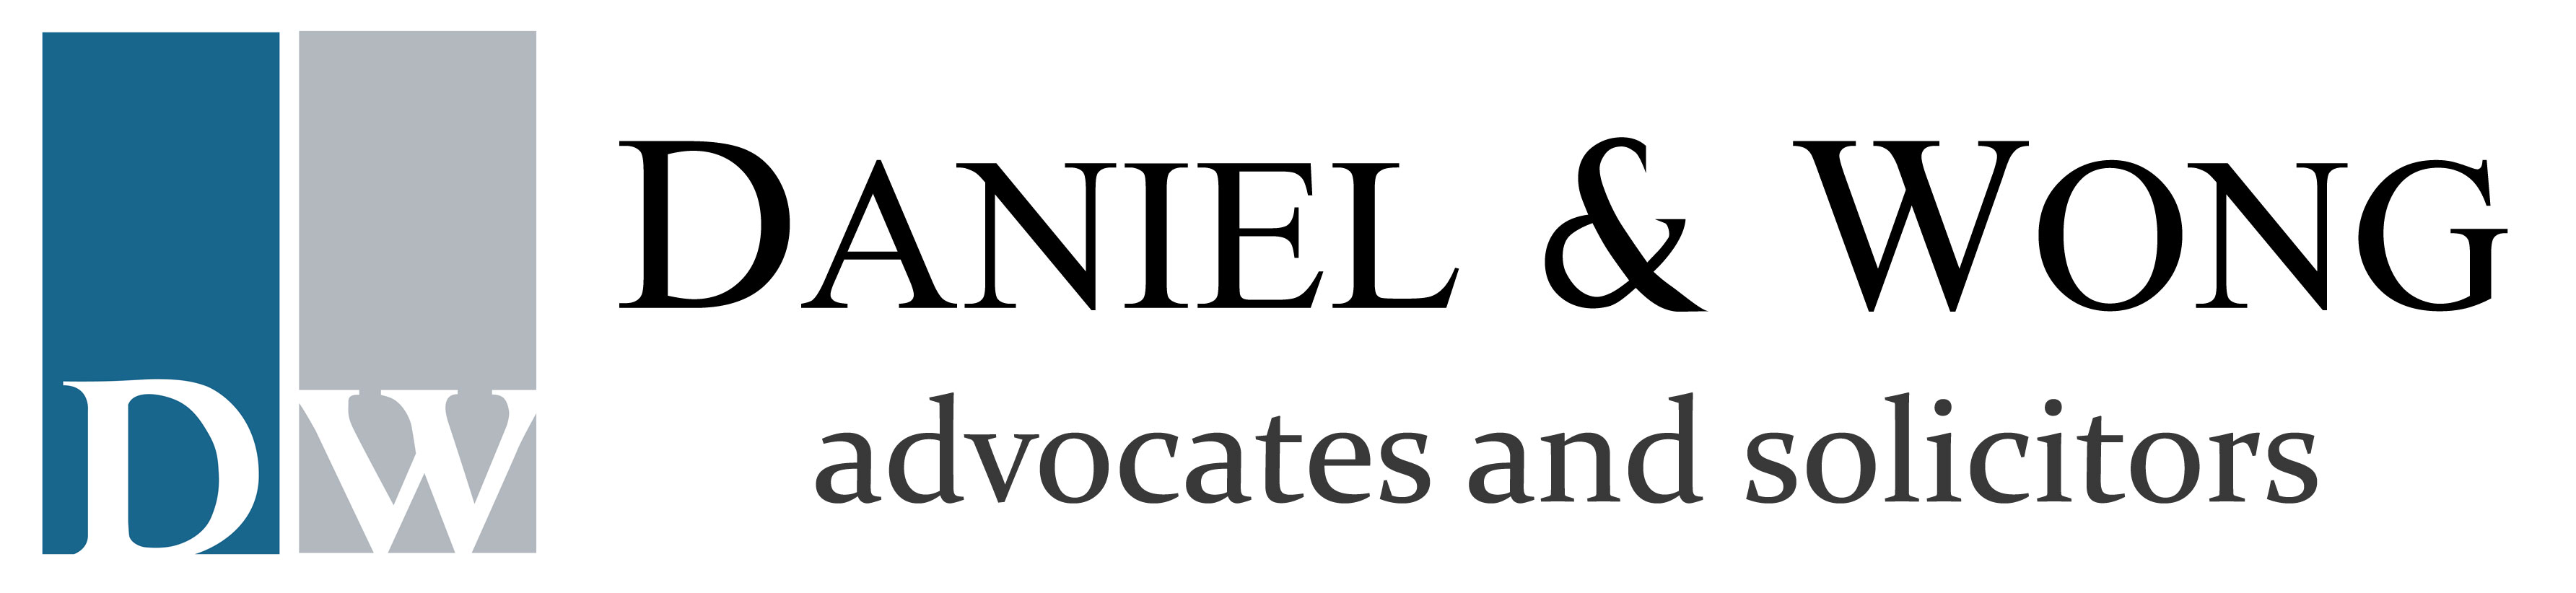 Daniel & Wong Advocates and Solicitors | Boutique Law Firm in KL